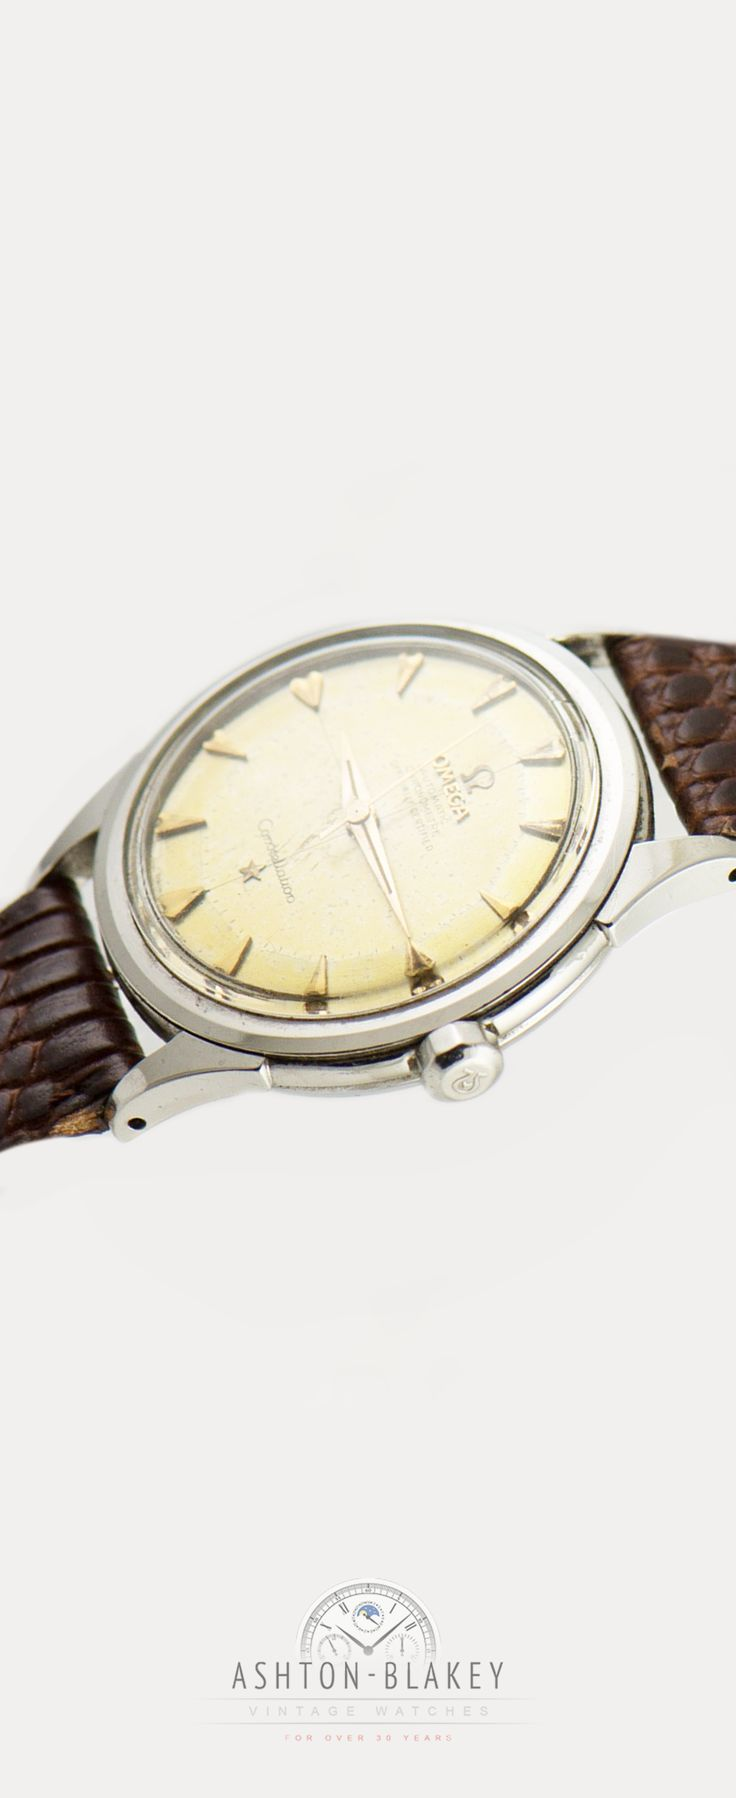 Classic old school vintage 1950's Omega Constellation